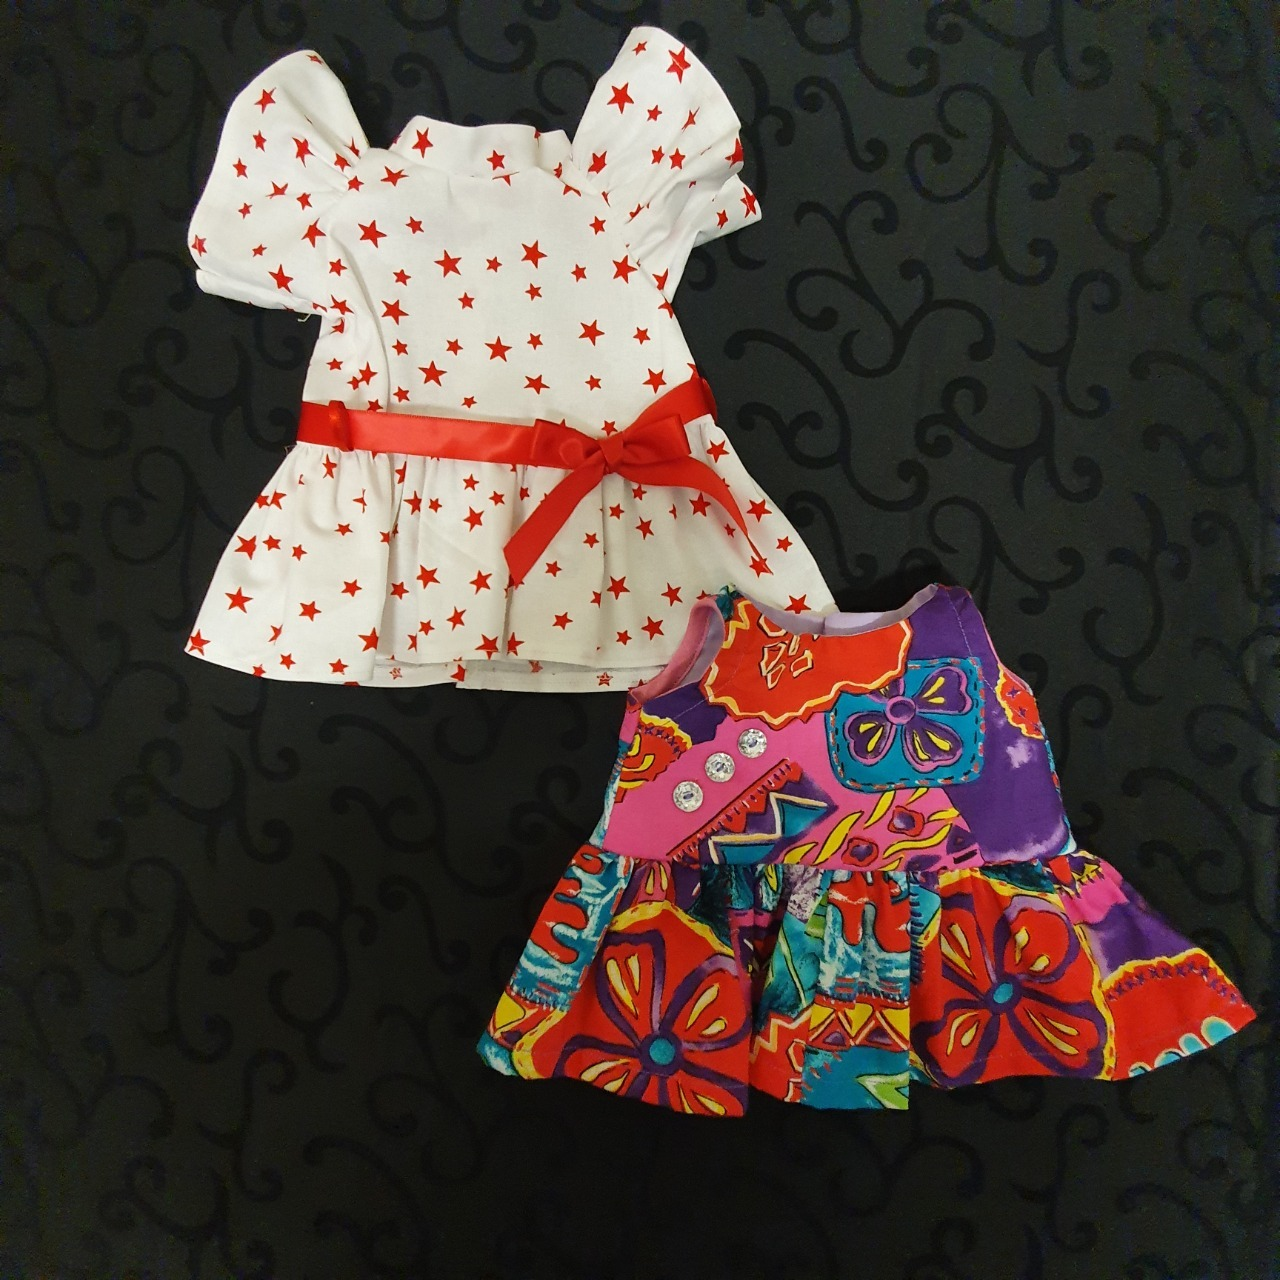 2 Cabbage Patch Doll Outfits